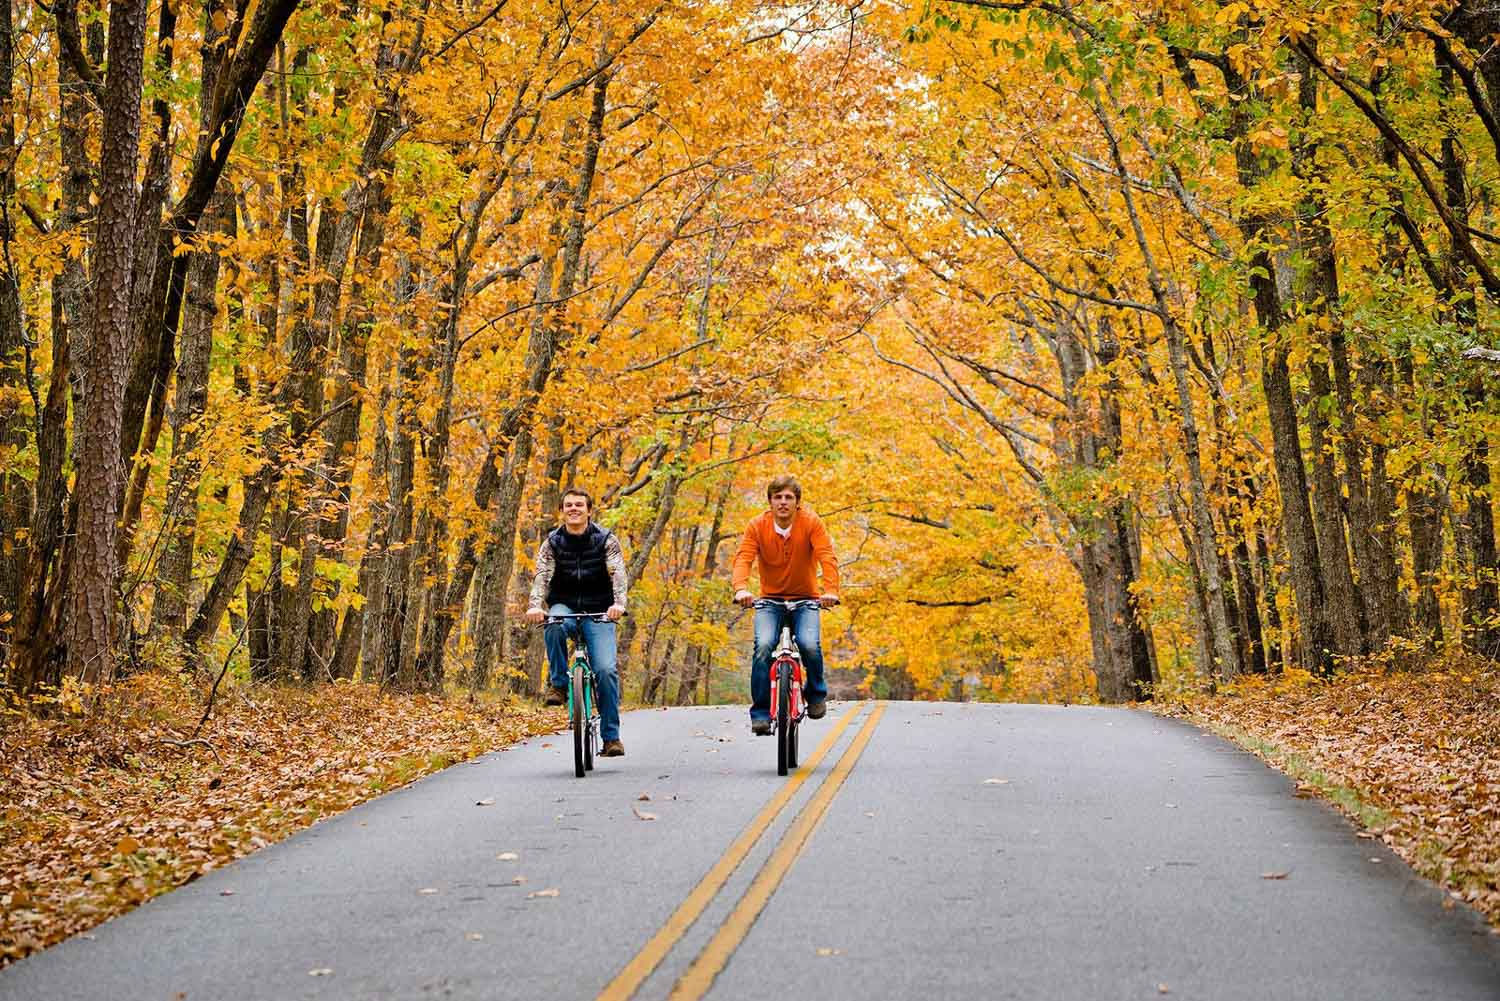 two bikers on a path through autumn leaves